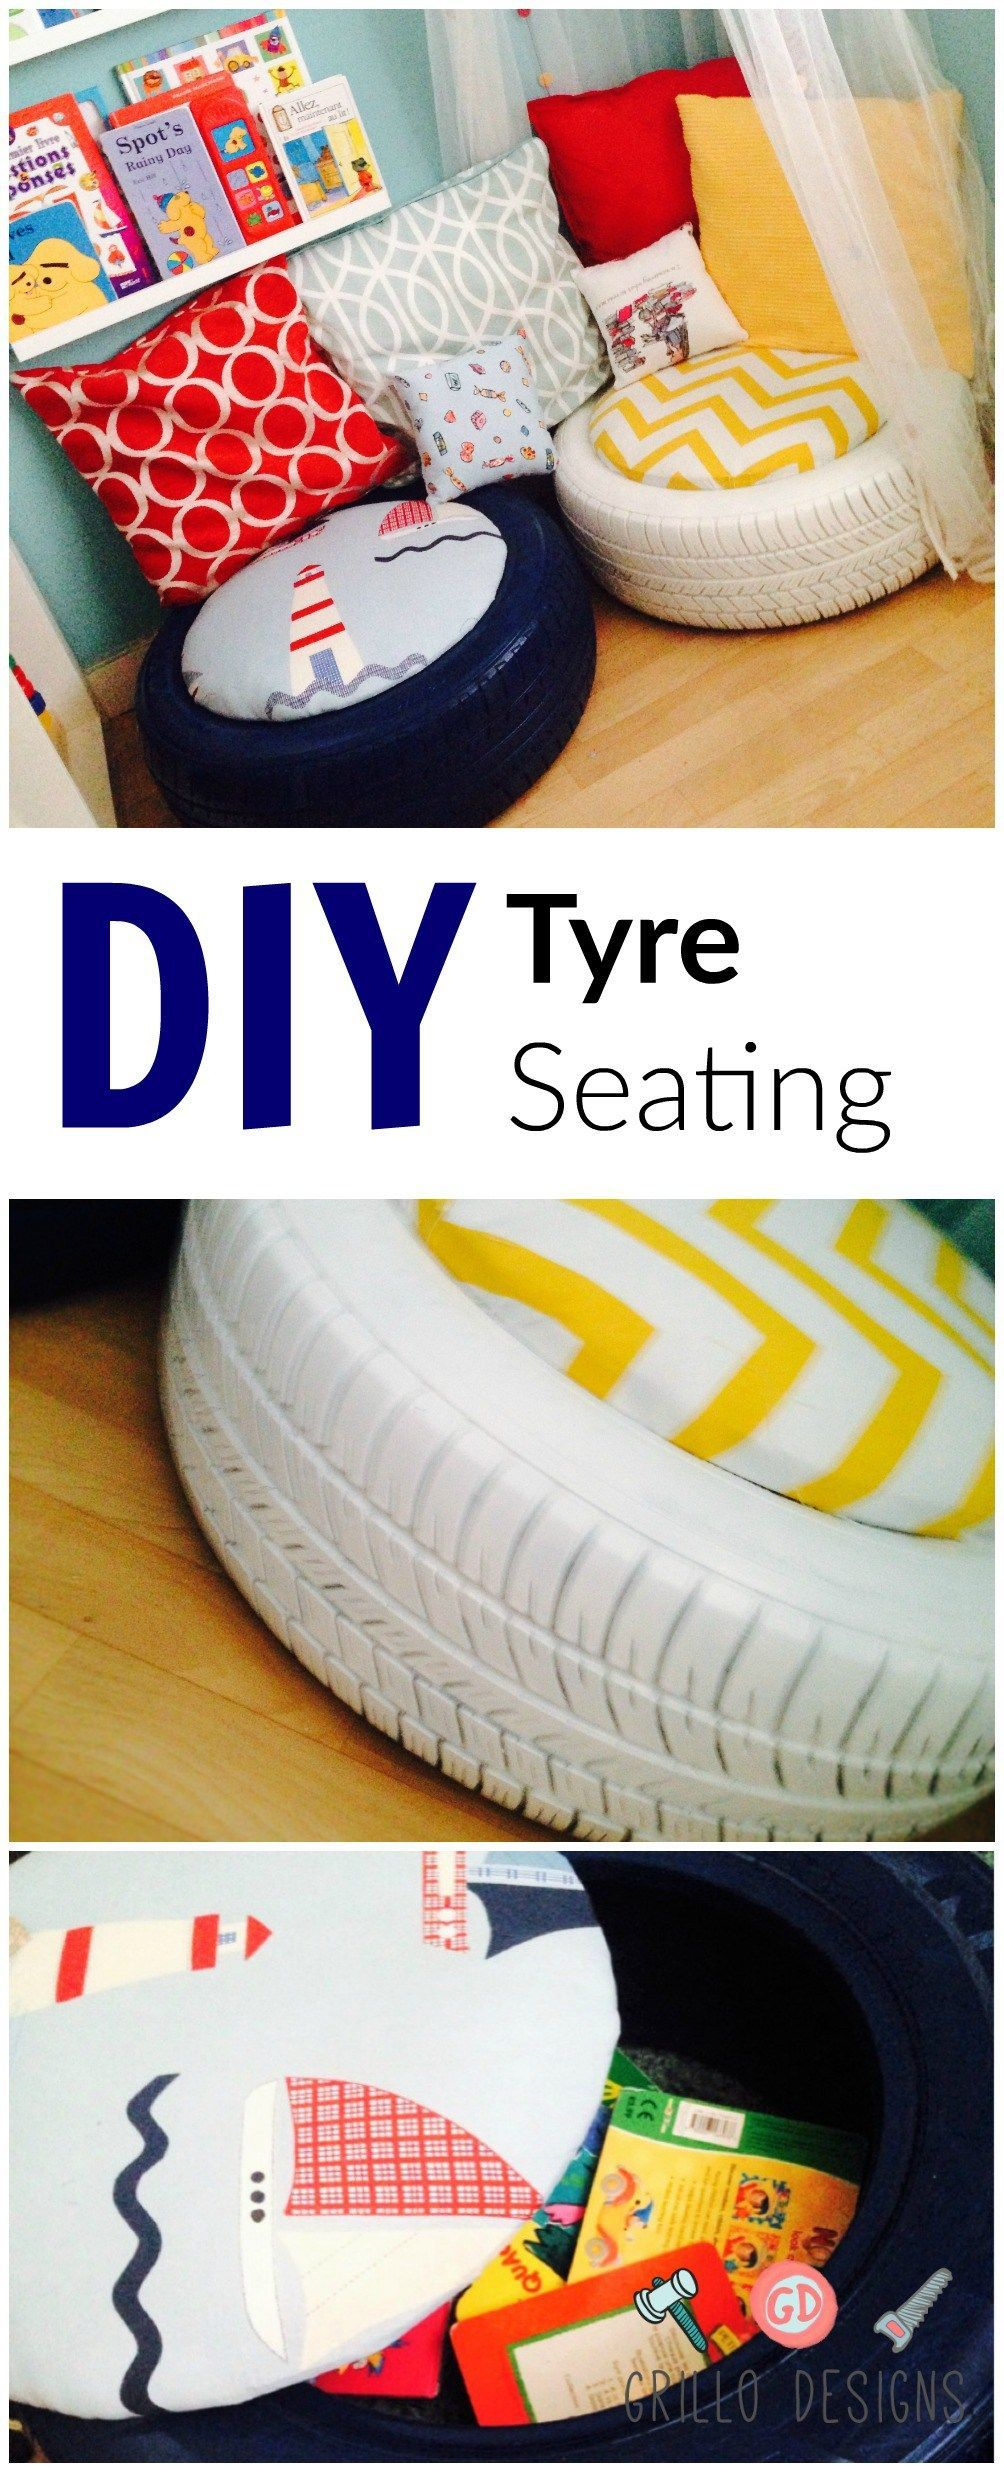 Shannon O'Neill's Pinterest #ztyre Image created at 25121710400771545 - DIY KIDS TYRE SEATING